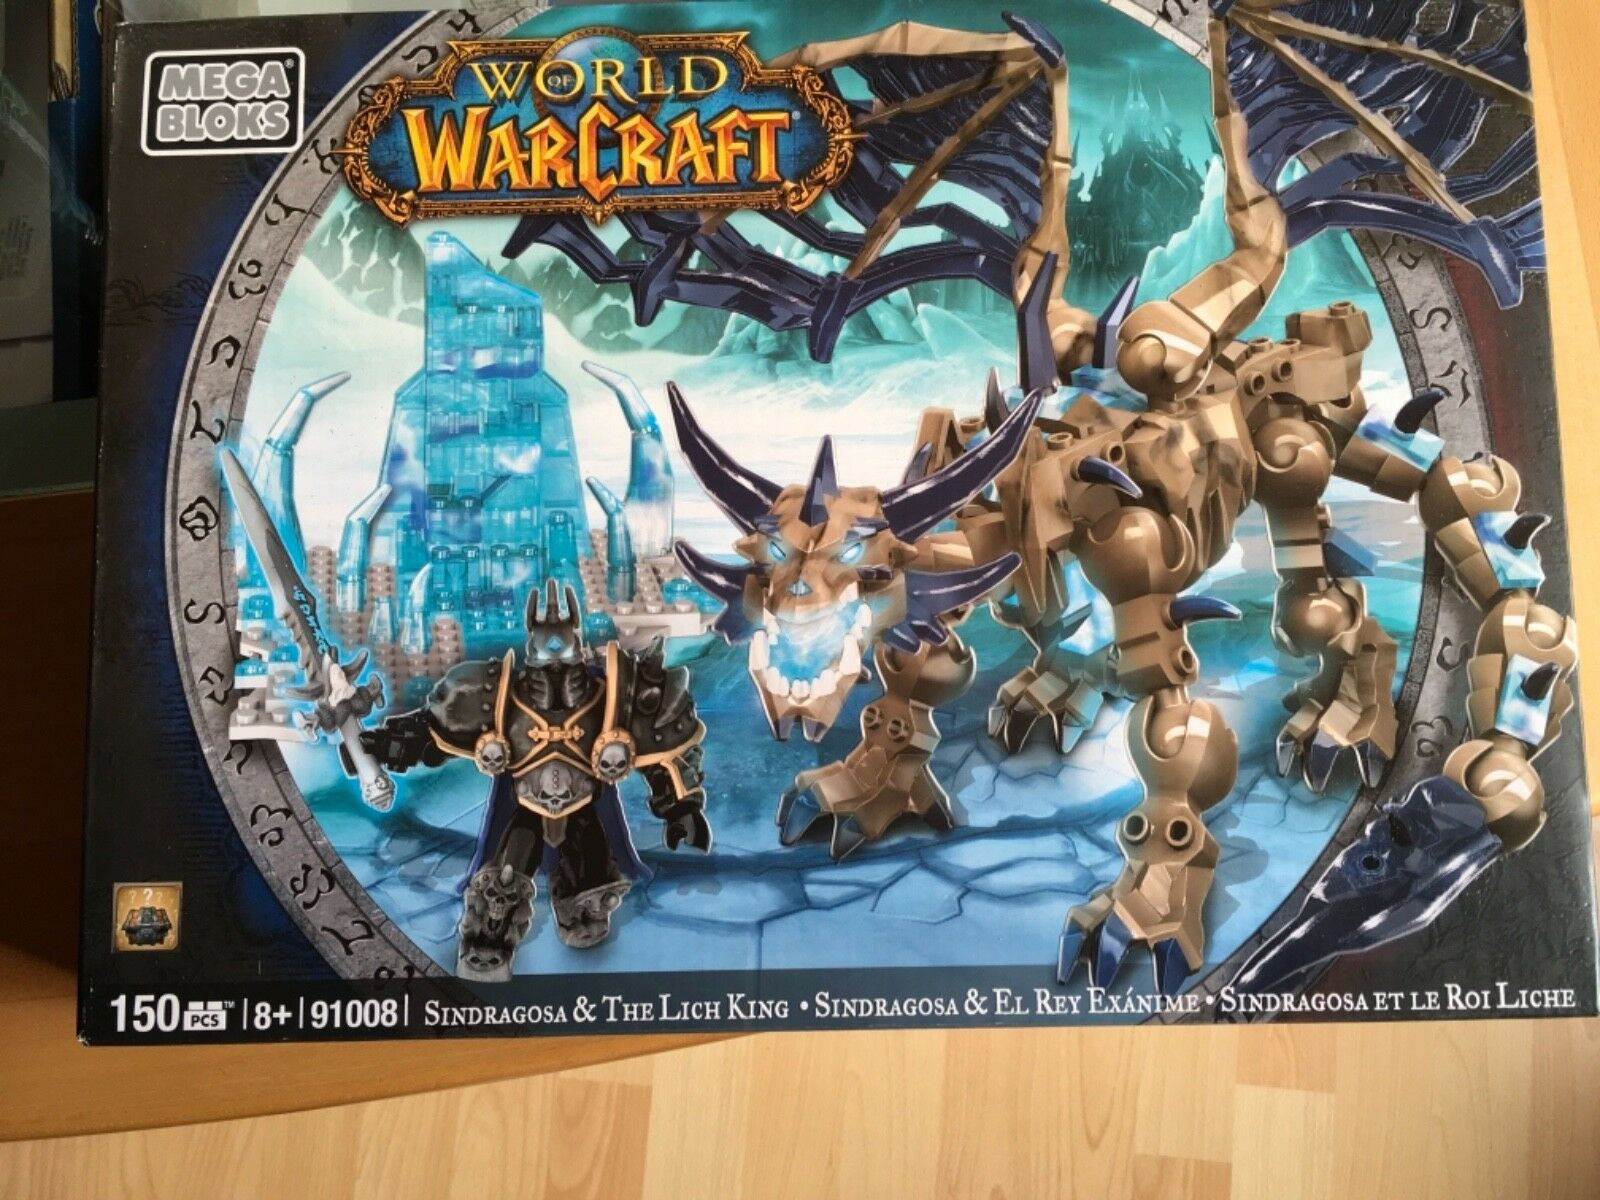 Mega Bloks World of Warcraft Warcraft Warcraft Singragosa & The Lich King Neu Rarität 2825f6